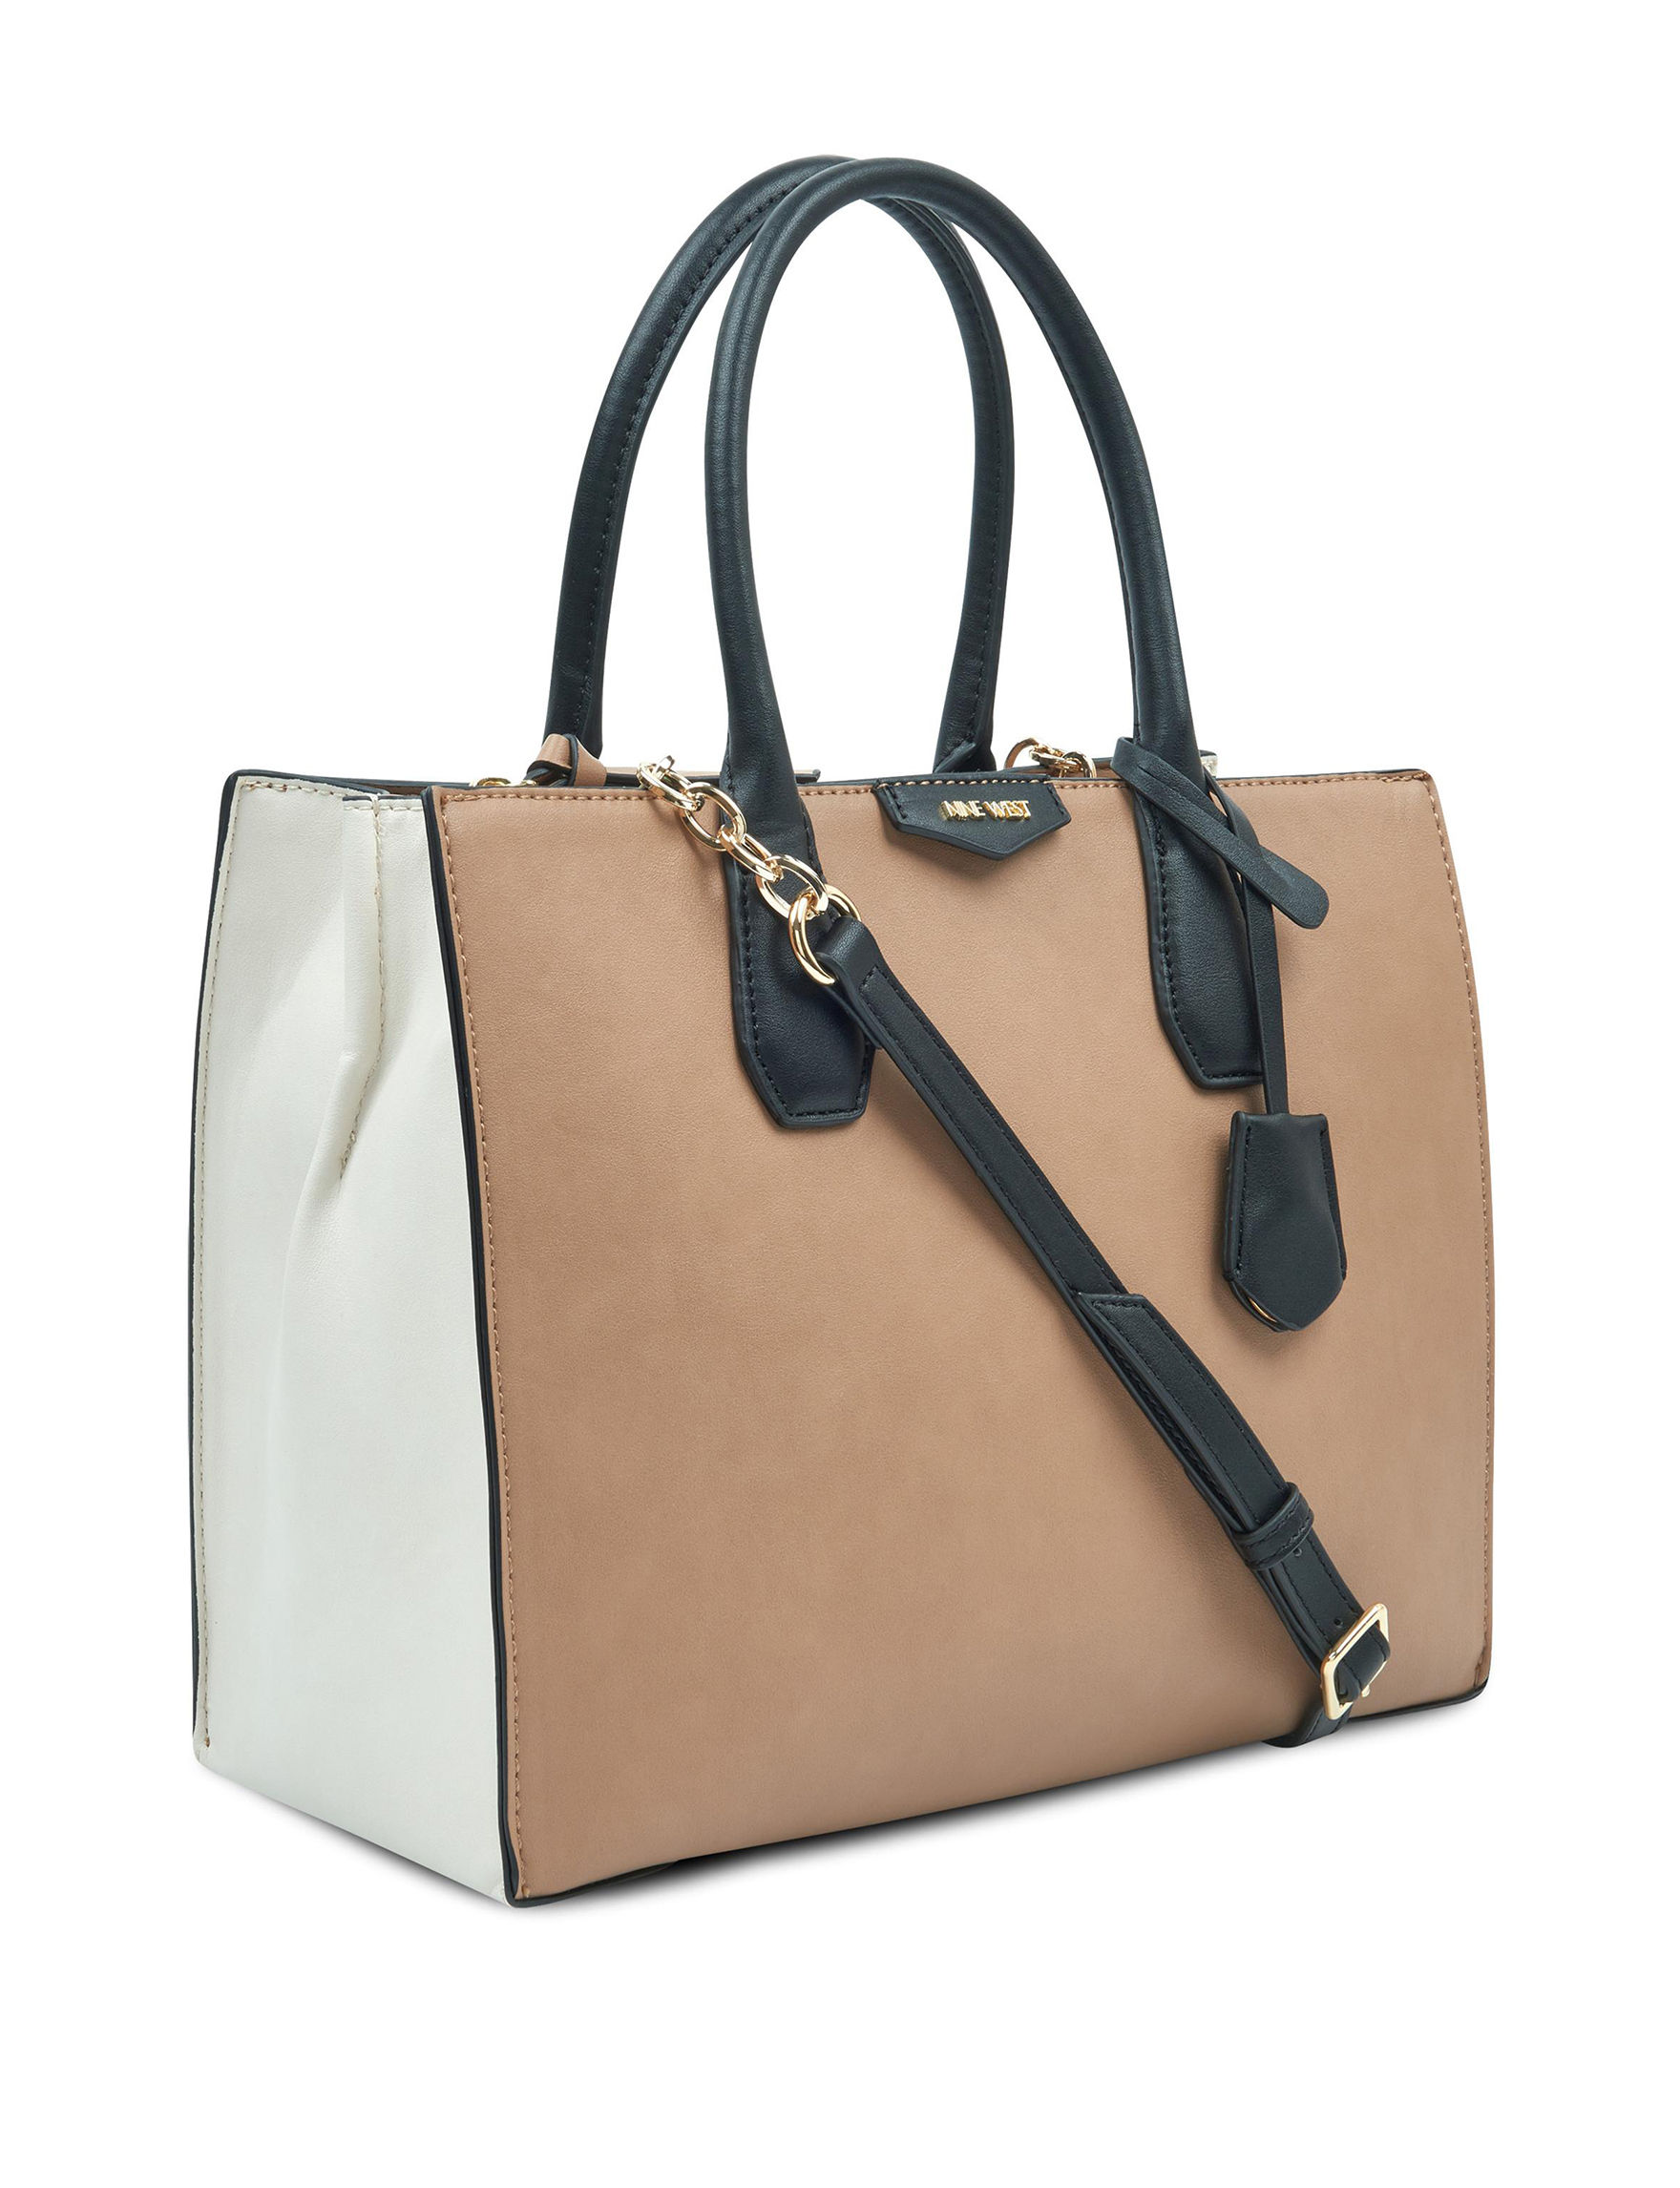 cefaea4f8 Nine West Maddol Tote Bag | Stage Stores